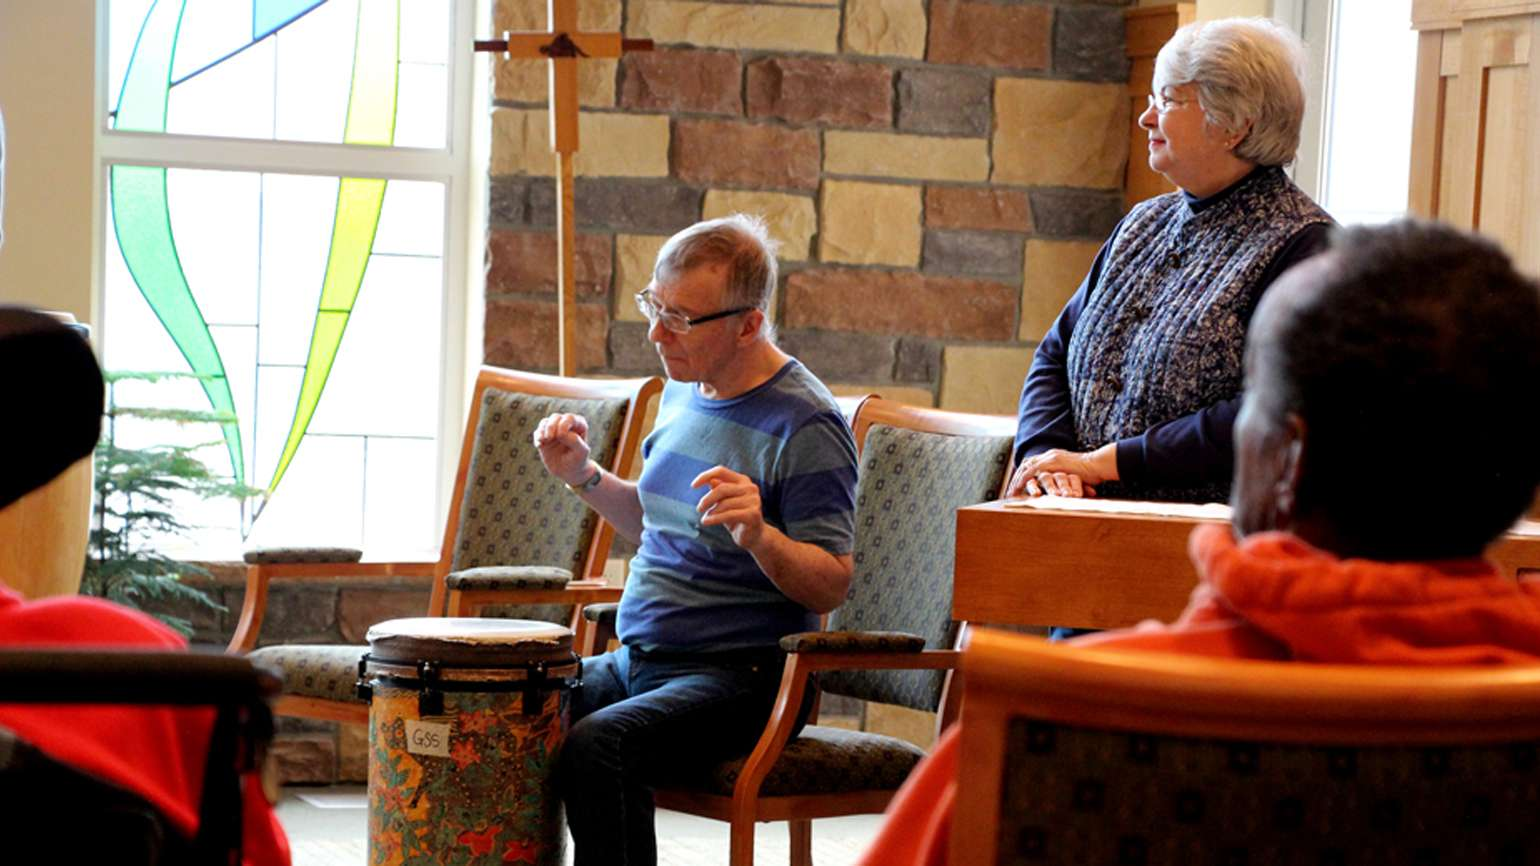 Fred drumming on an African drum with his wife, Jeanette standing by his side.